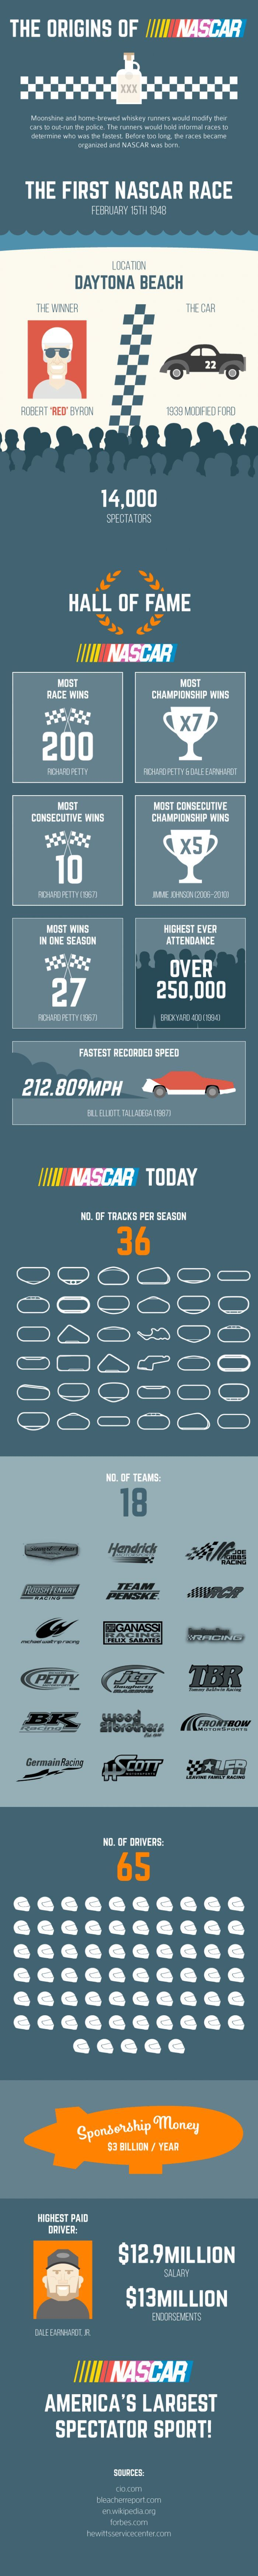 The Evolution Of Nascar In One Simple Infographic - Motorsport